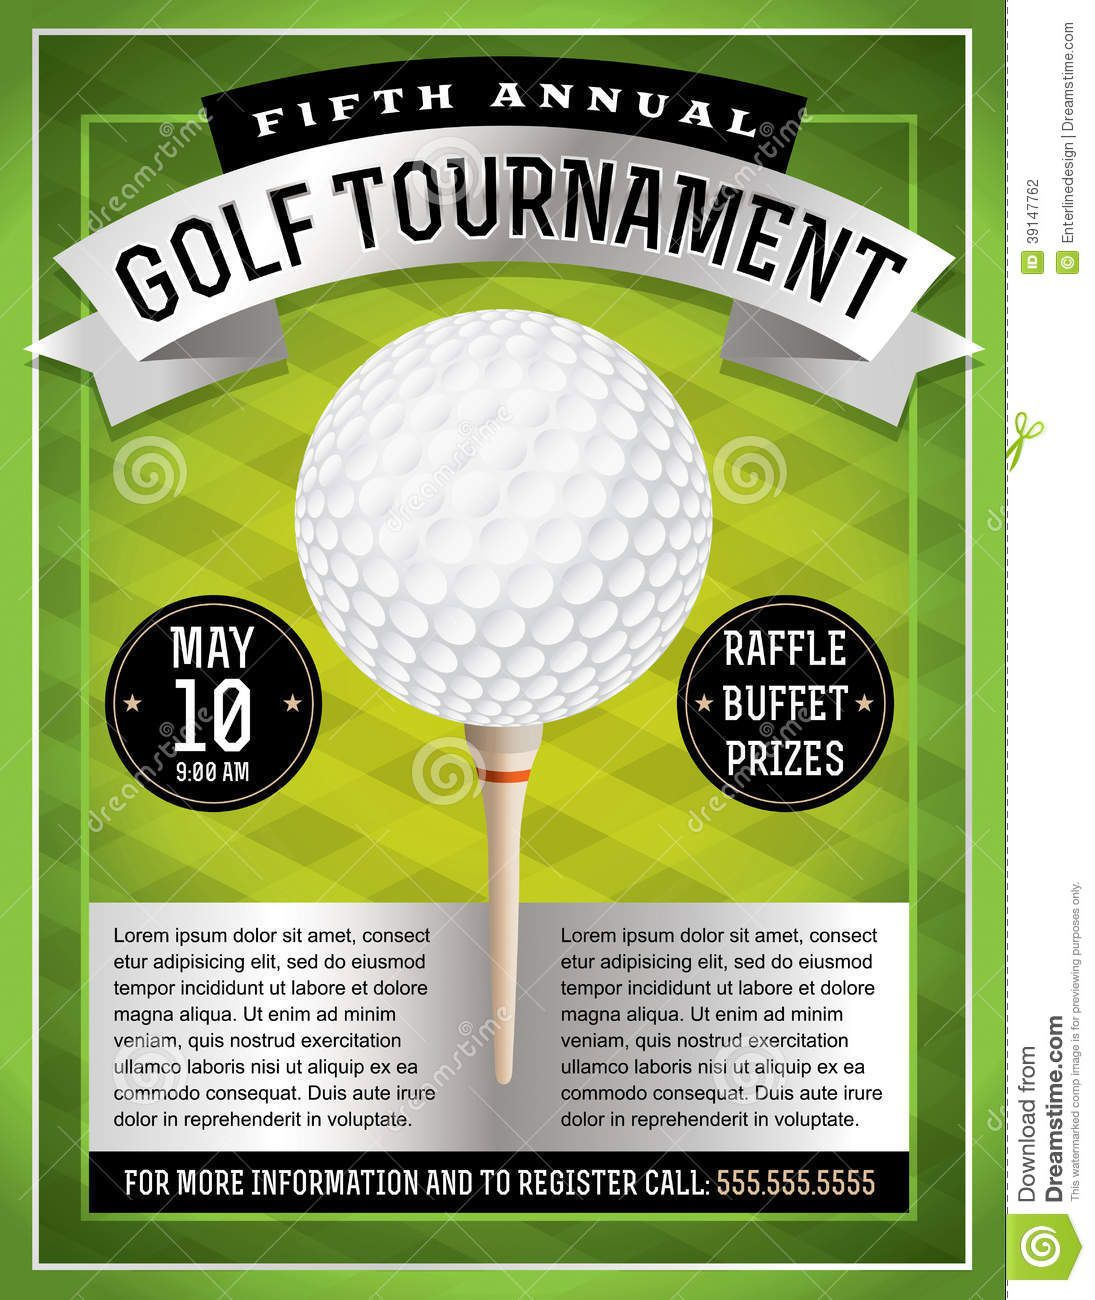 007 Imposing Golf Tournament Flyer Template Image  Word Free PdfFull